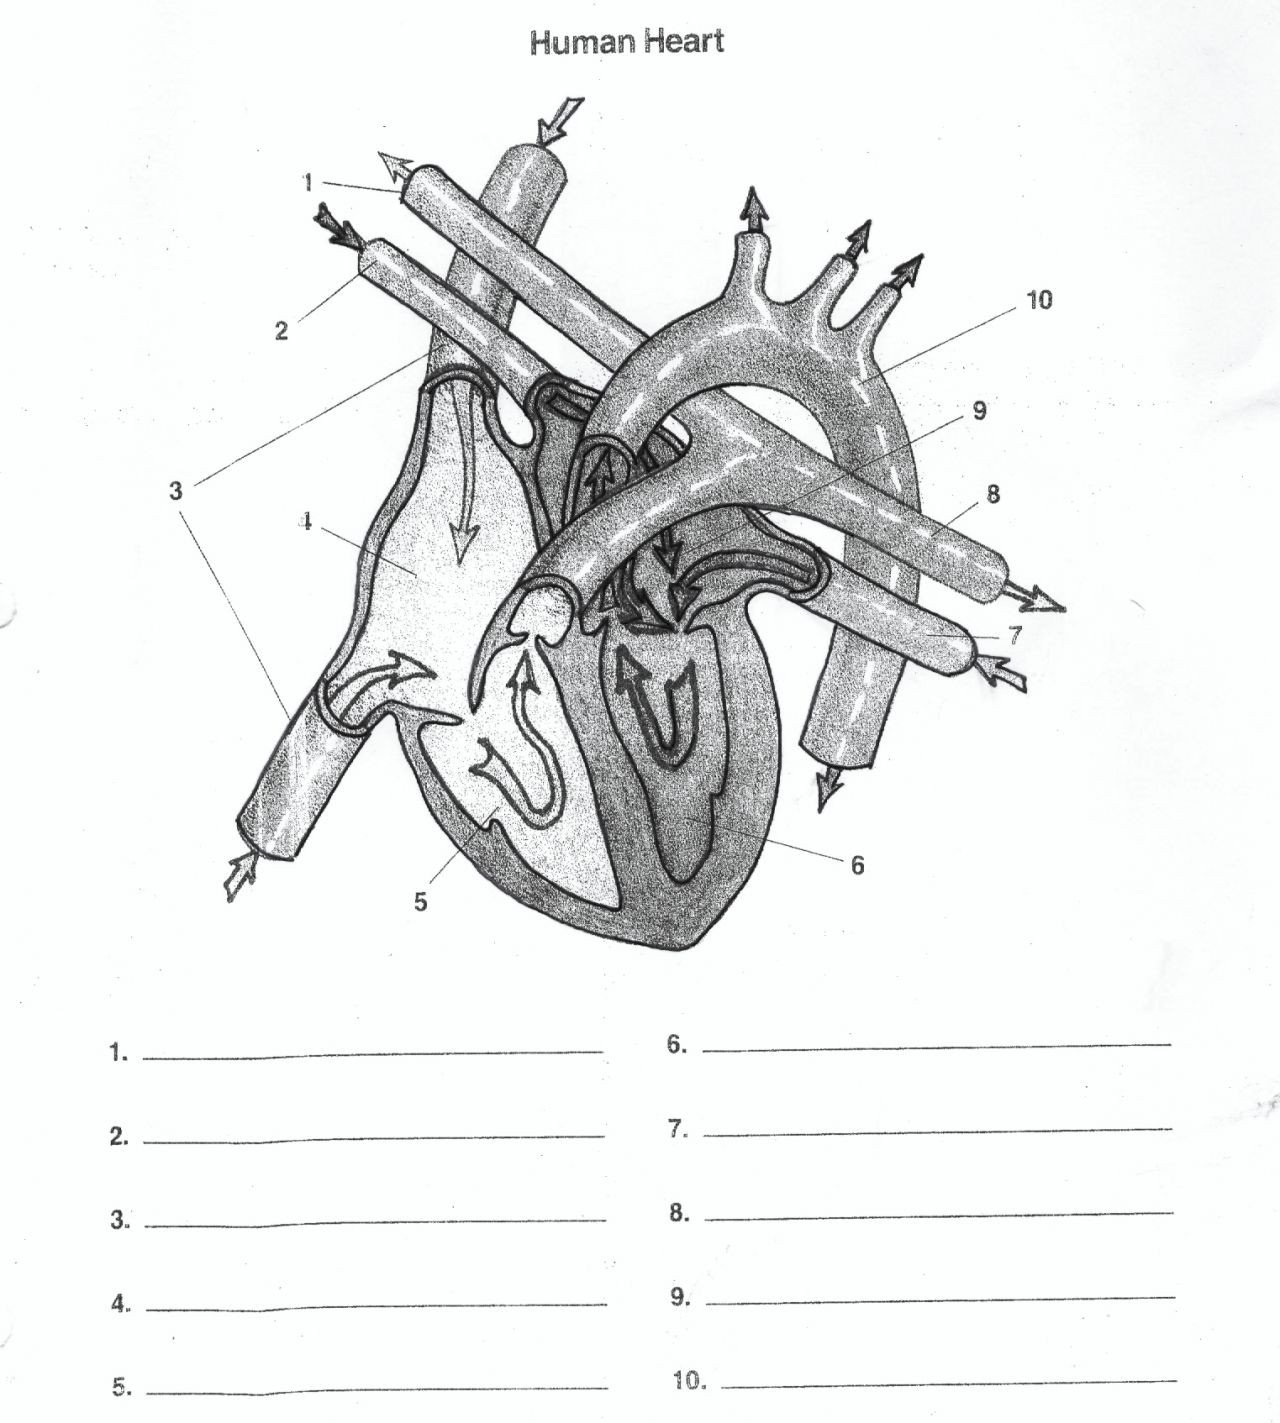 Heart Diagram Worksheet Blank Heart Diagram Blank Human Body Anatomy